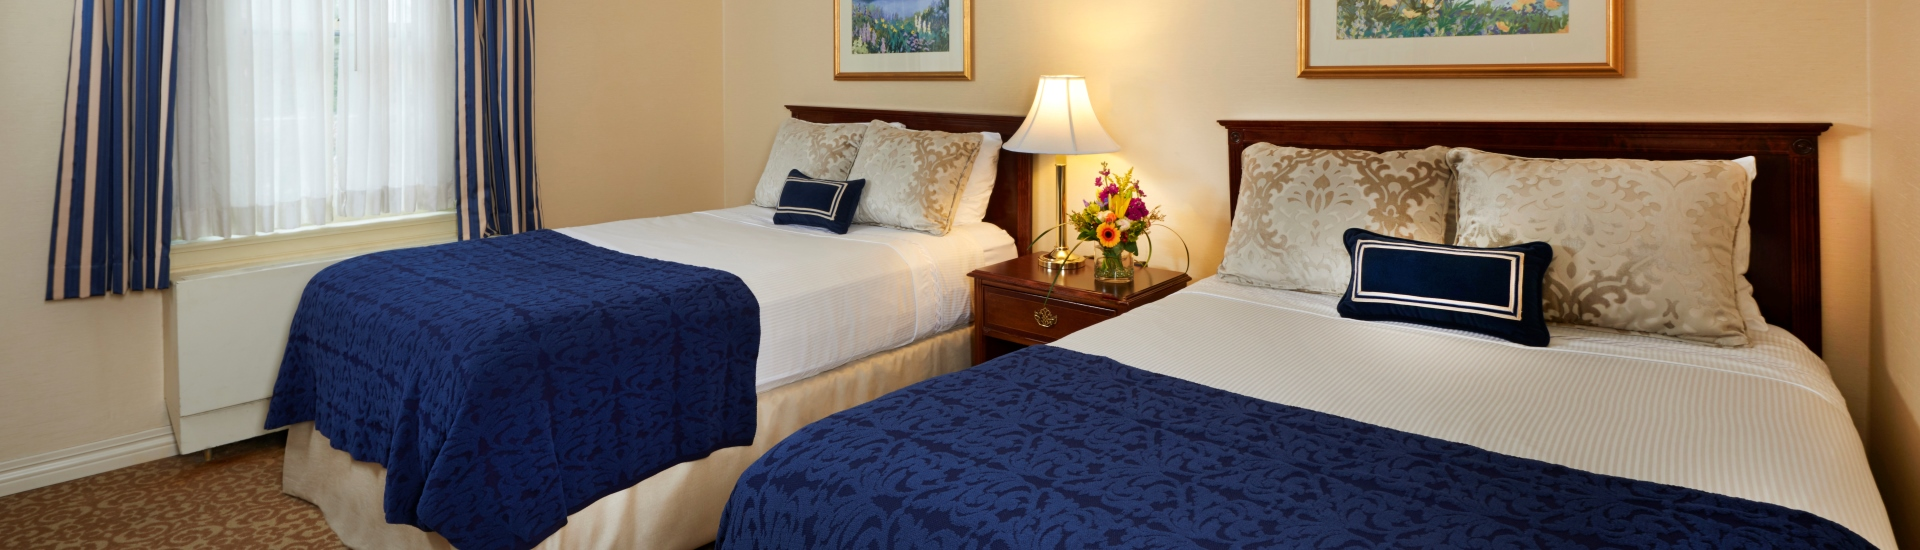 Deluxe Double Room at The Nittany Lion Inn